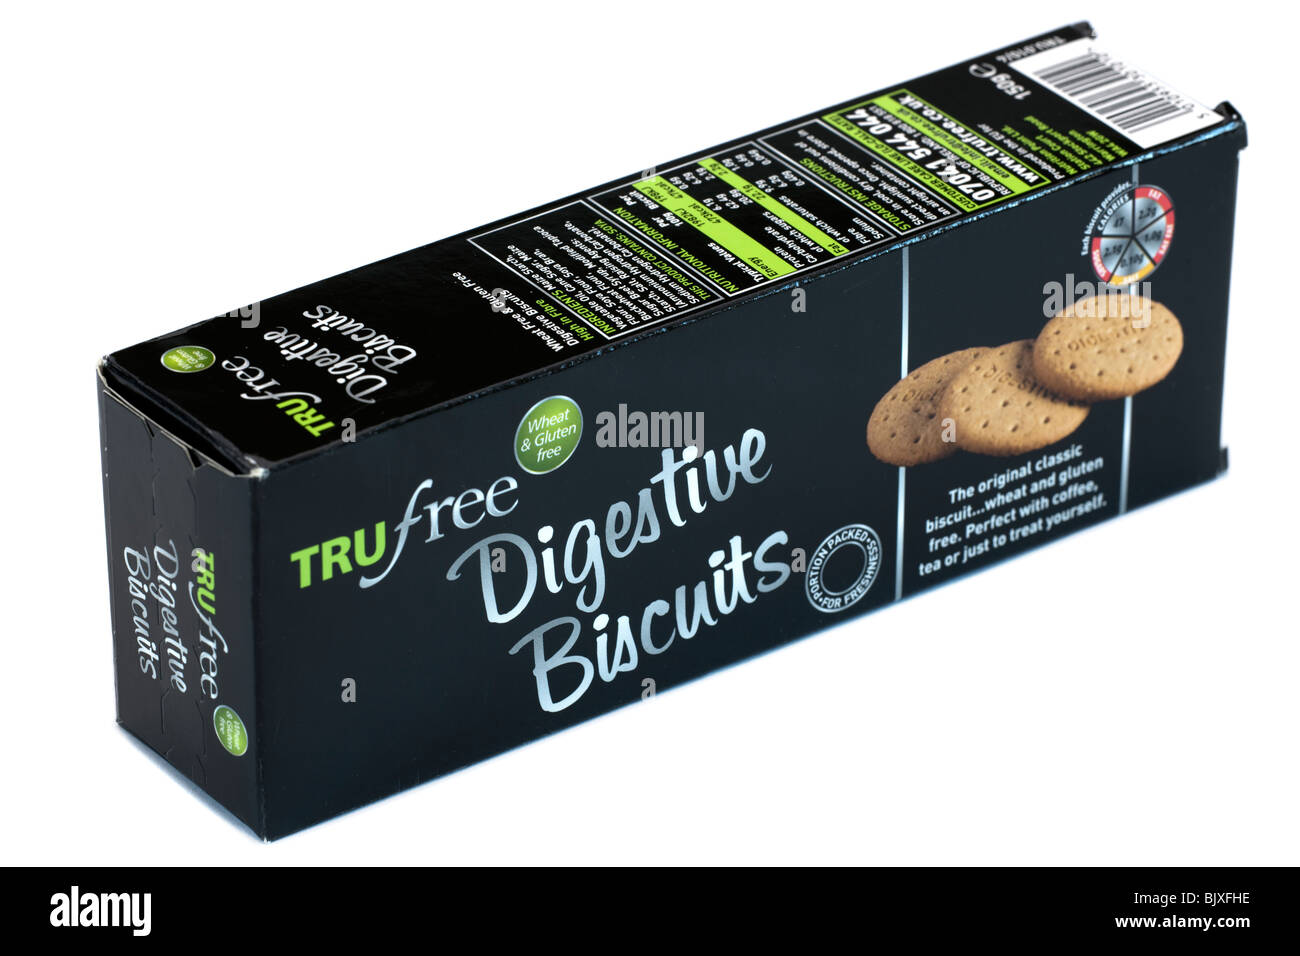 Box of Trufree Digestive biscuits - Stock Image